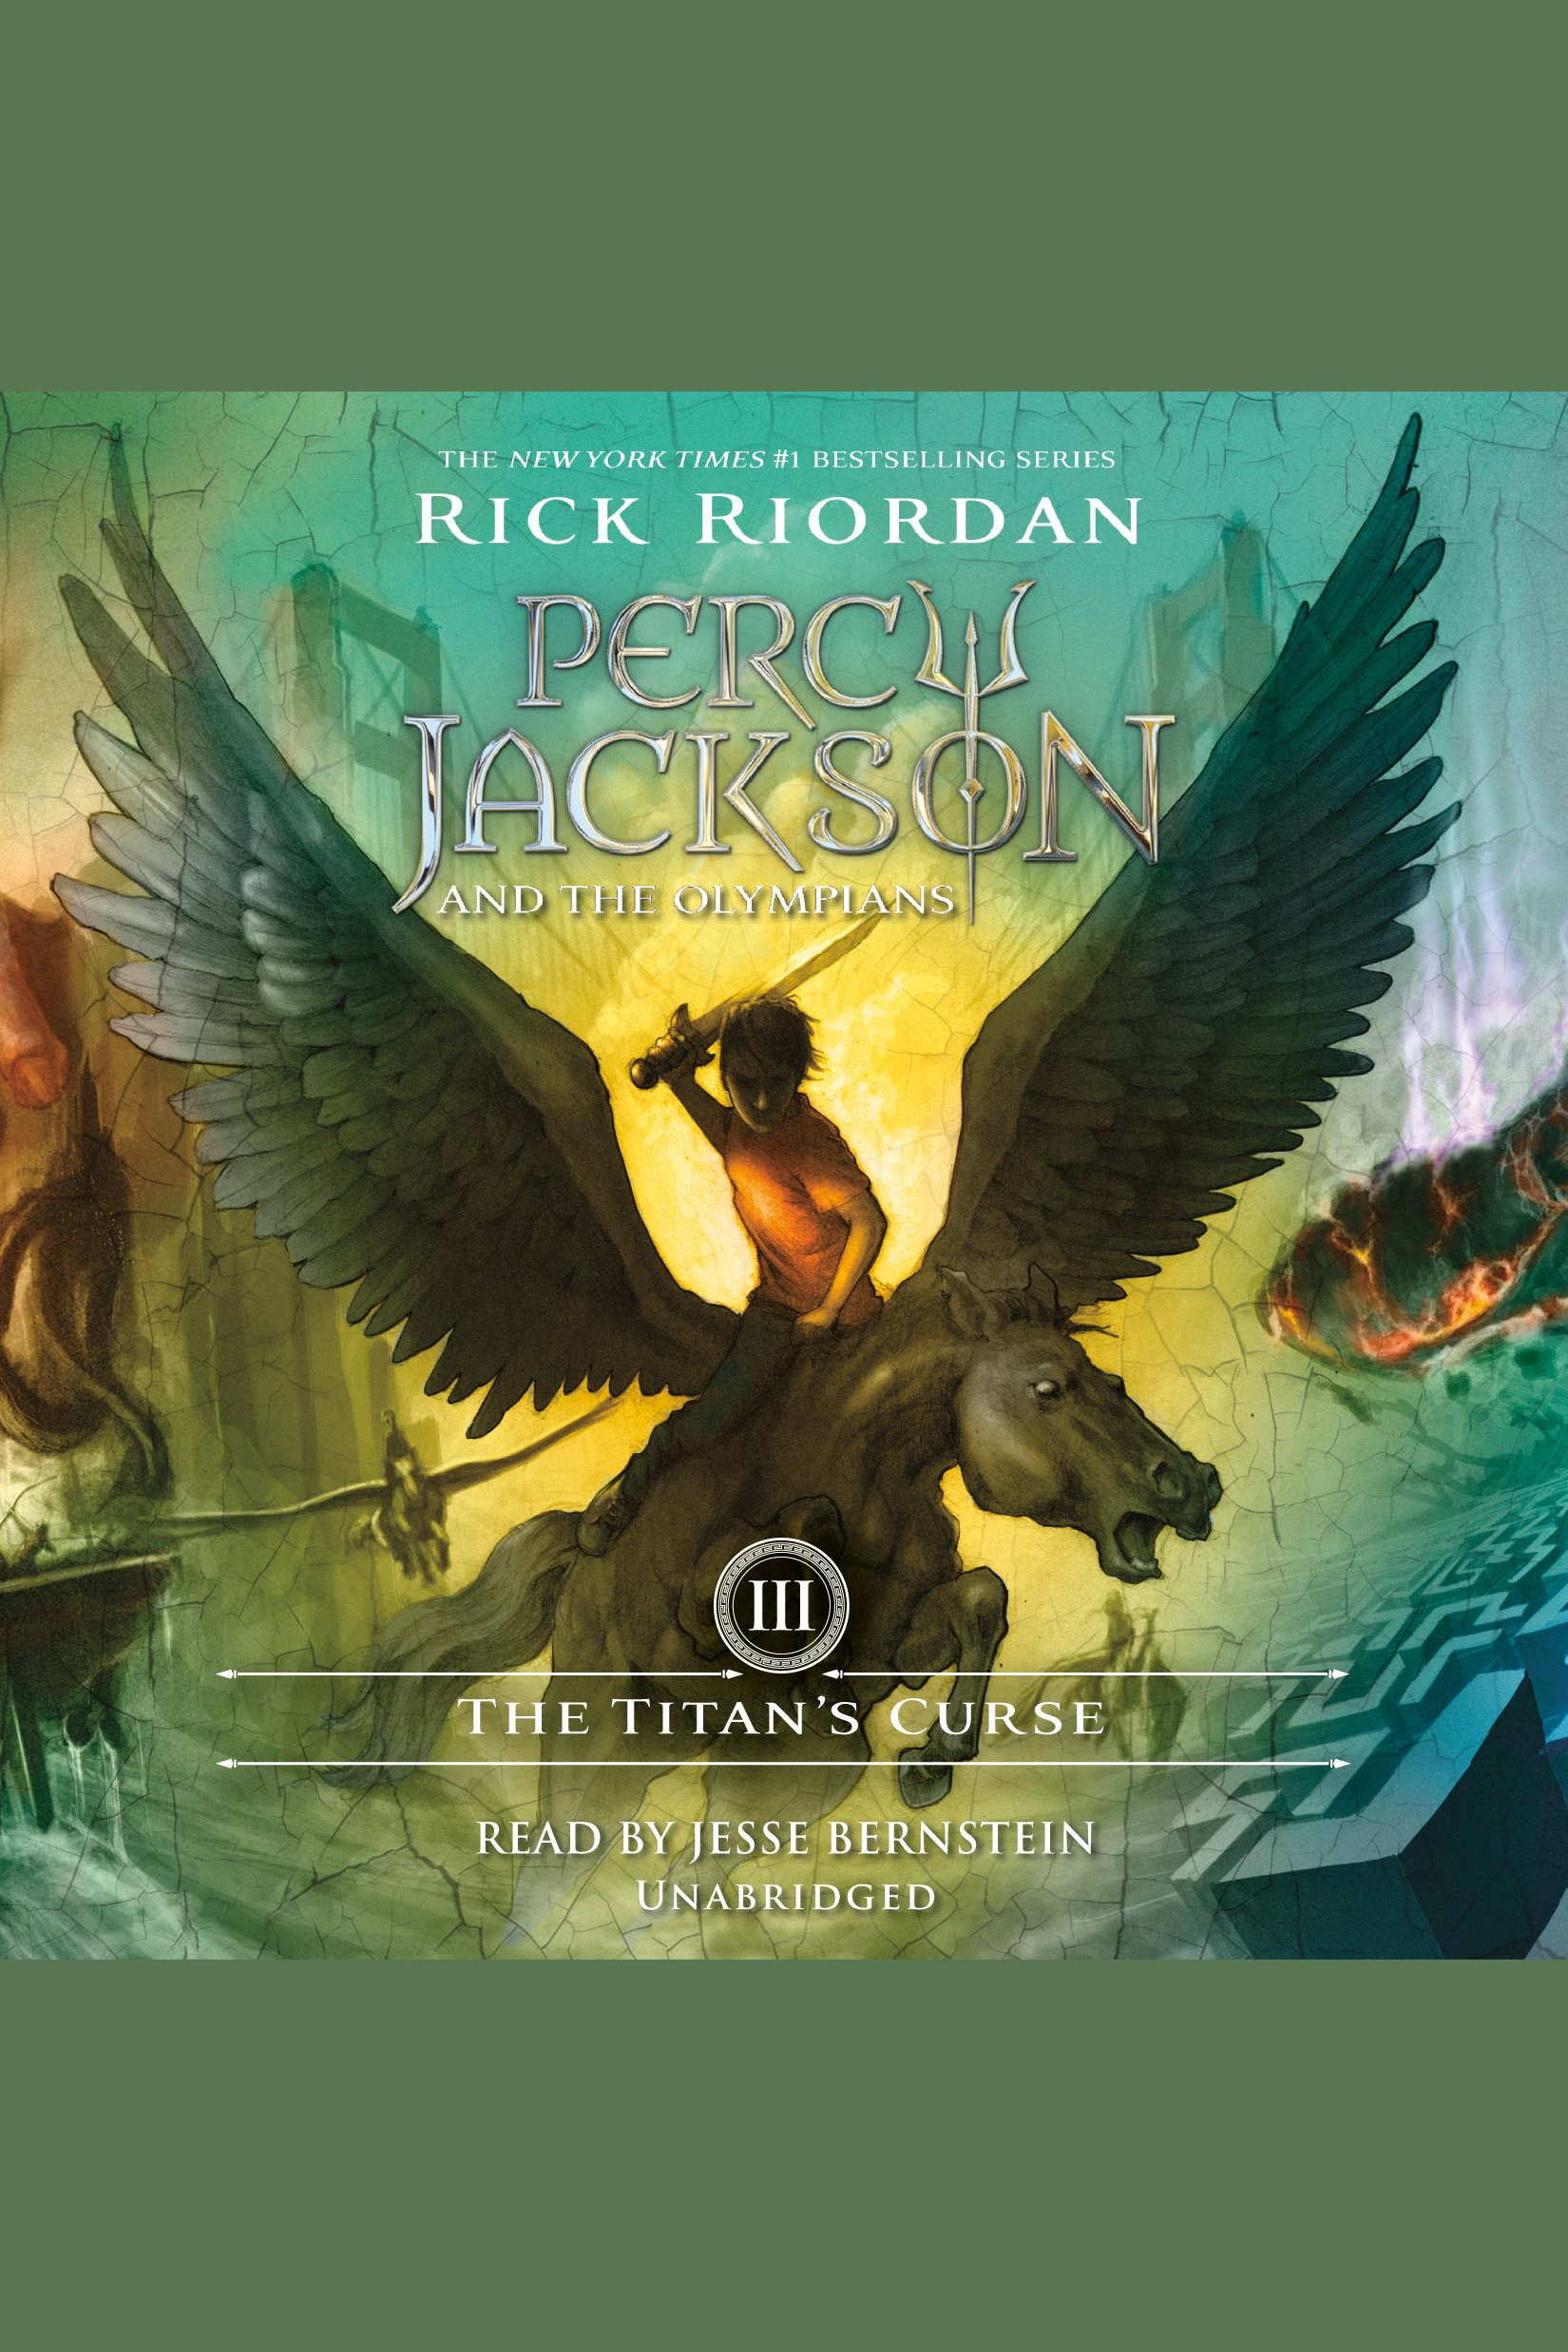 Titan's Curse, The Percy Jackson and the Olympians: Book 3